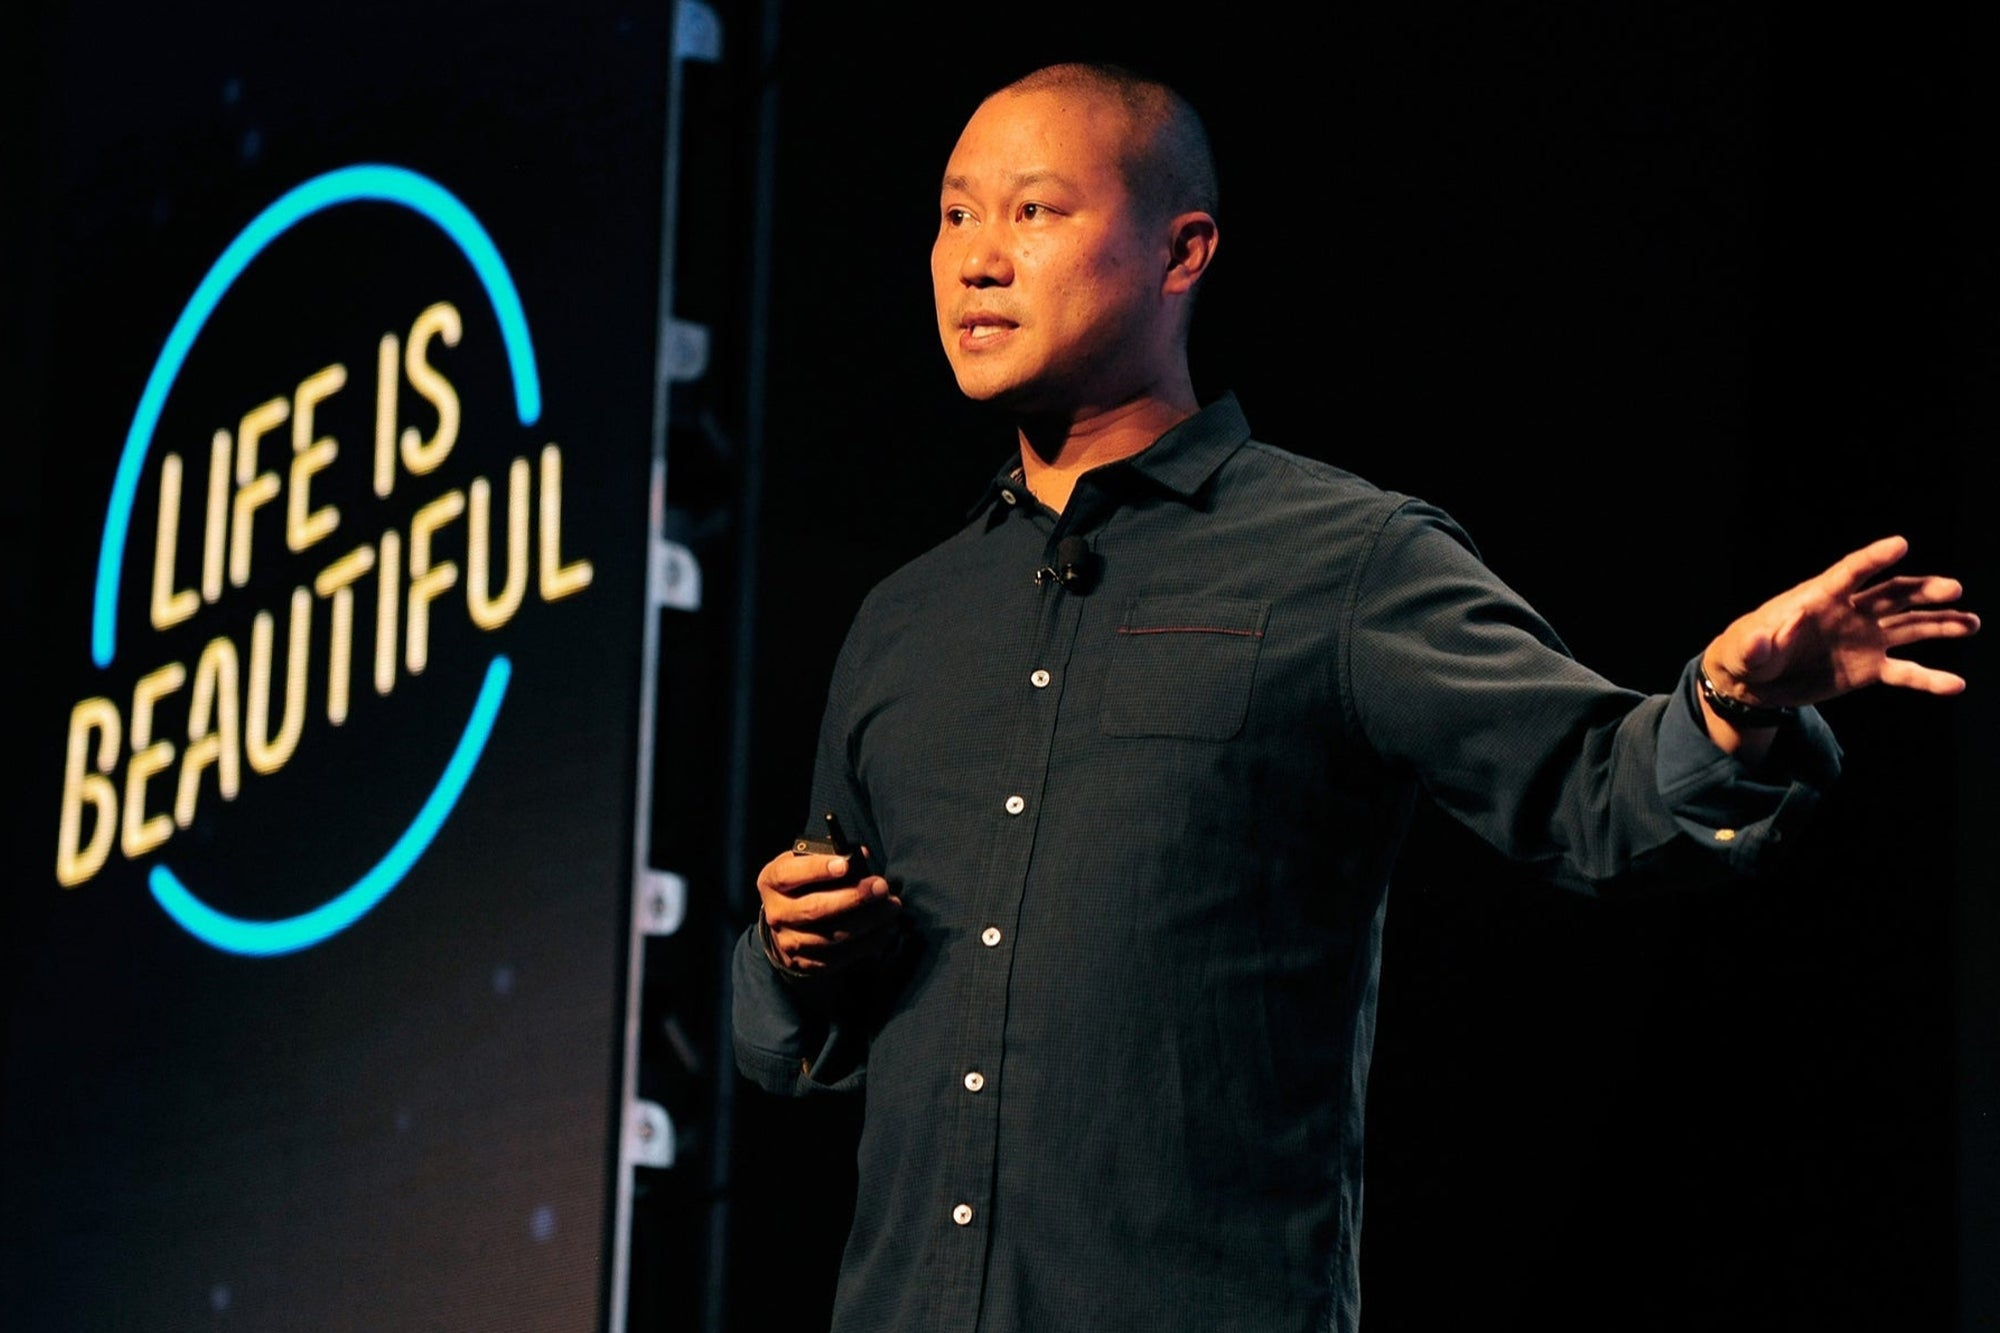 Tony Hsieh, tycoon and online commerce guru, dies at 46 in house fire